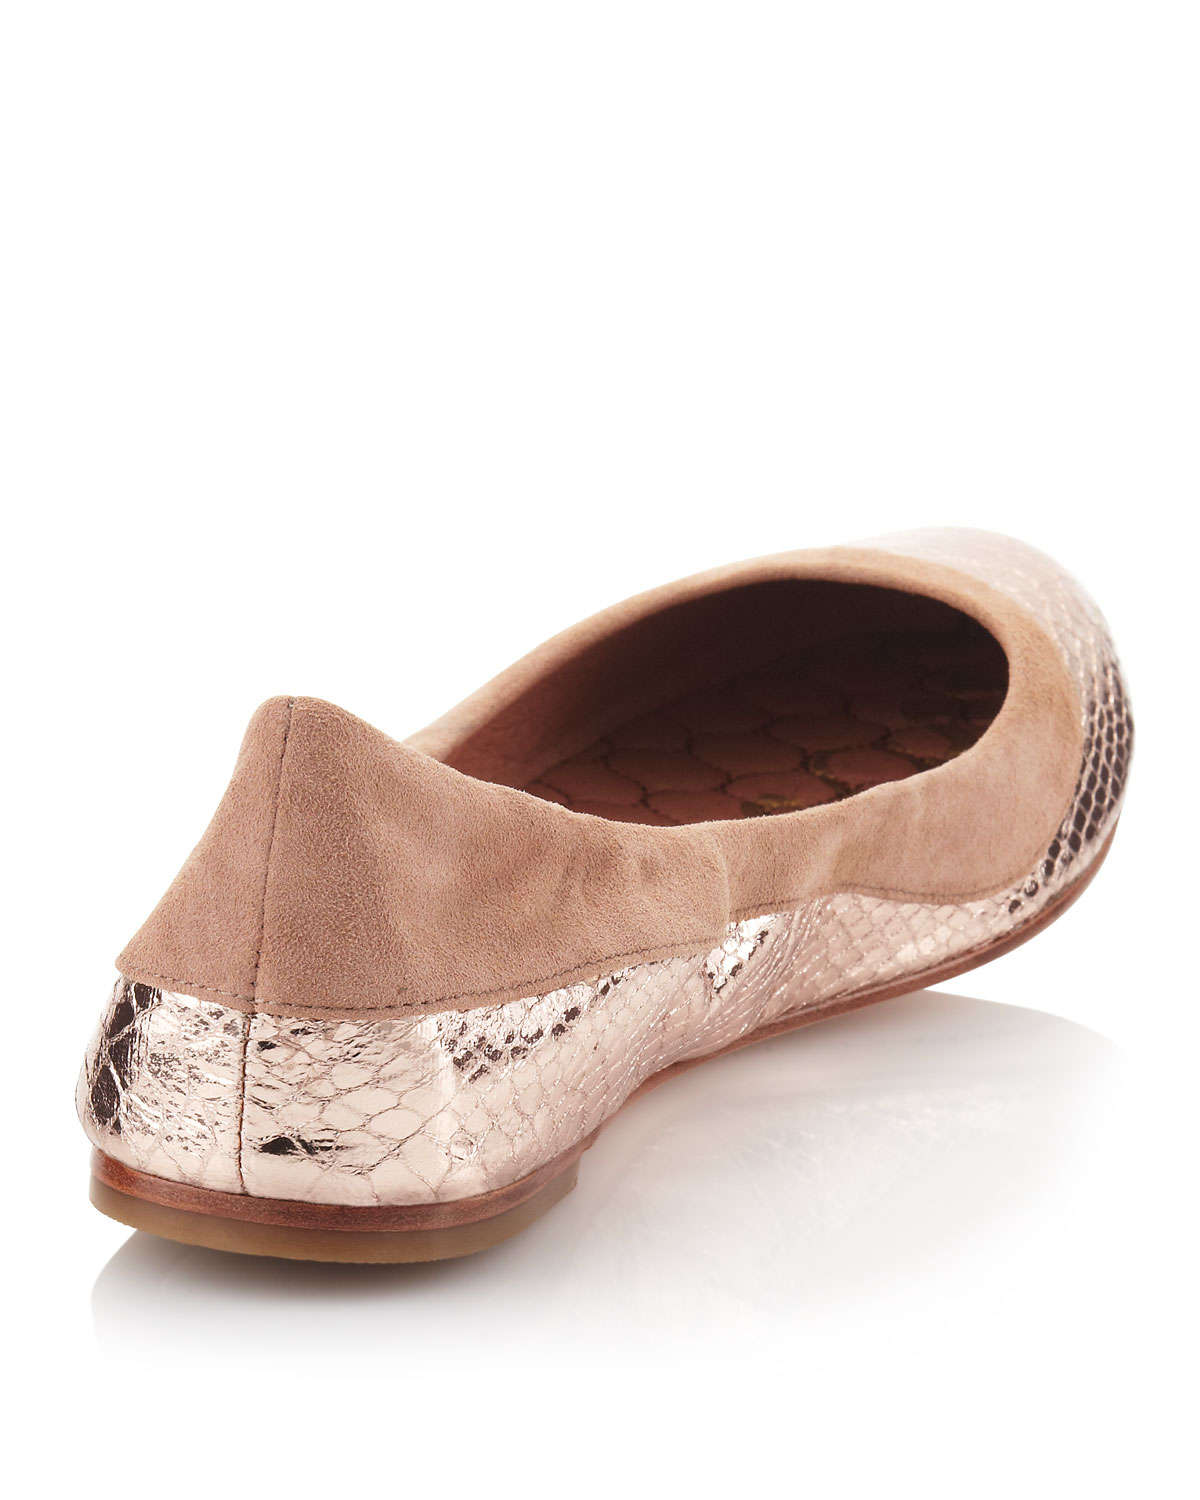 023a280a67a Lyst - Sam Edelman Bina Ballerina Flat Rose Gold in Natural